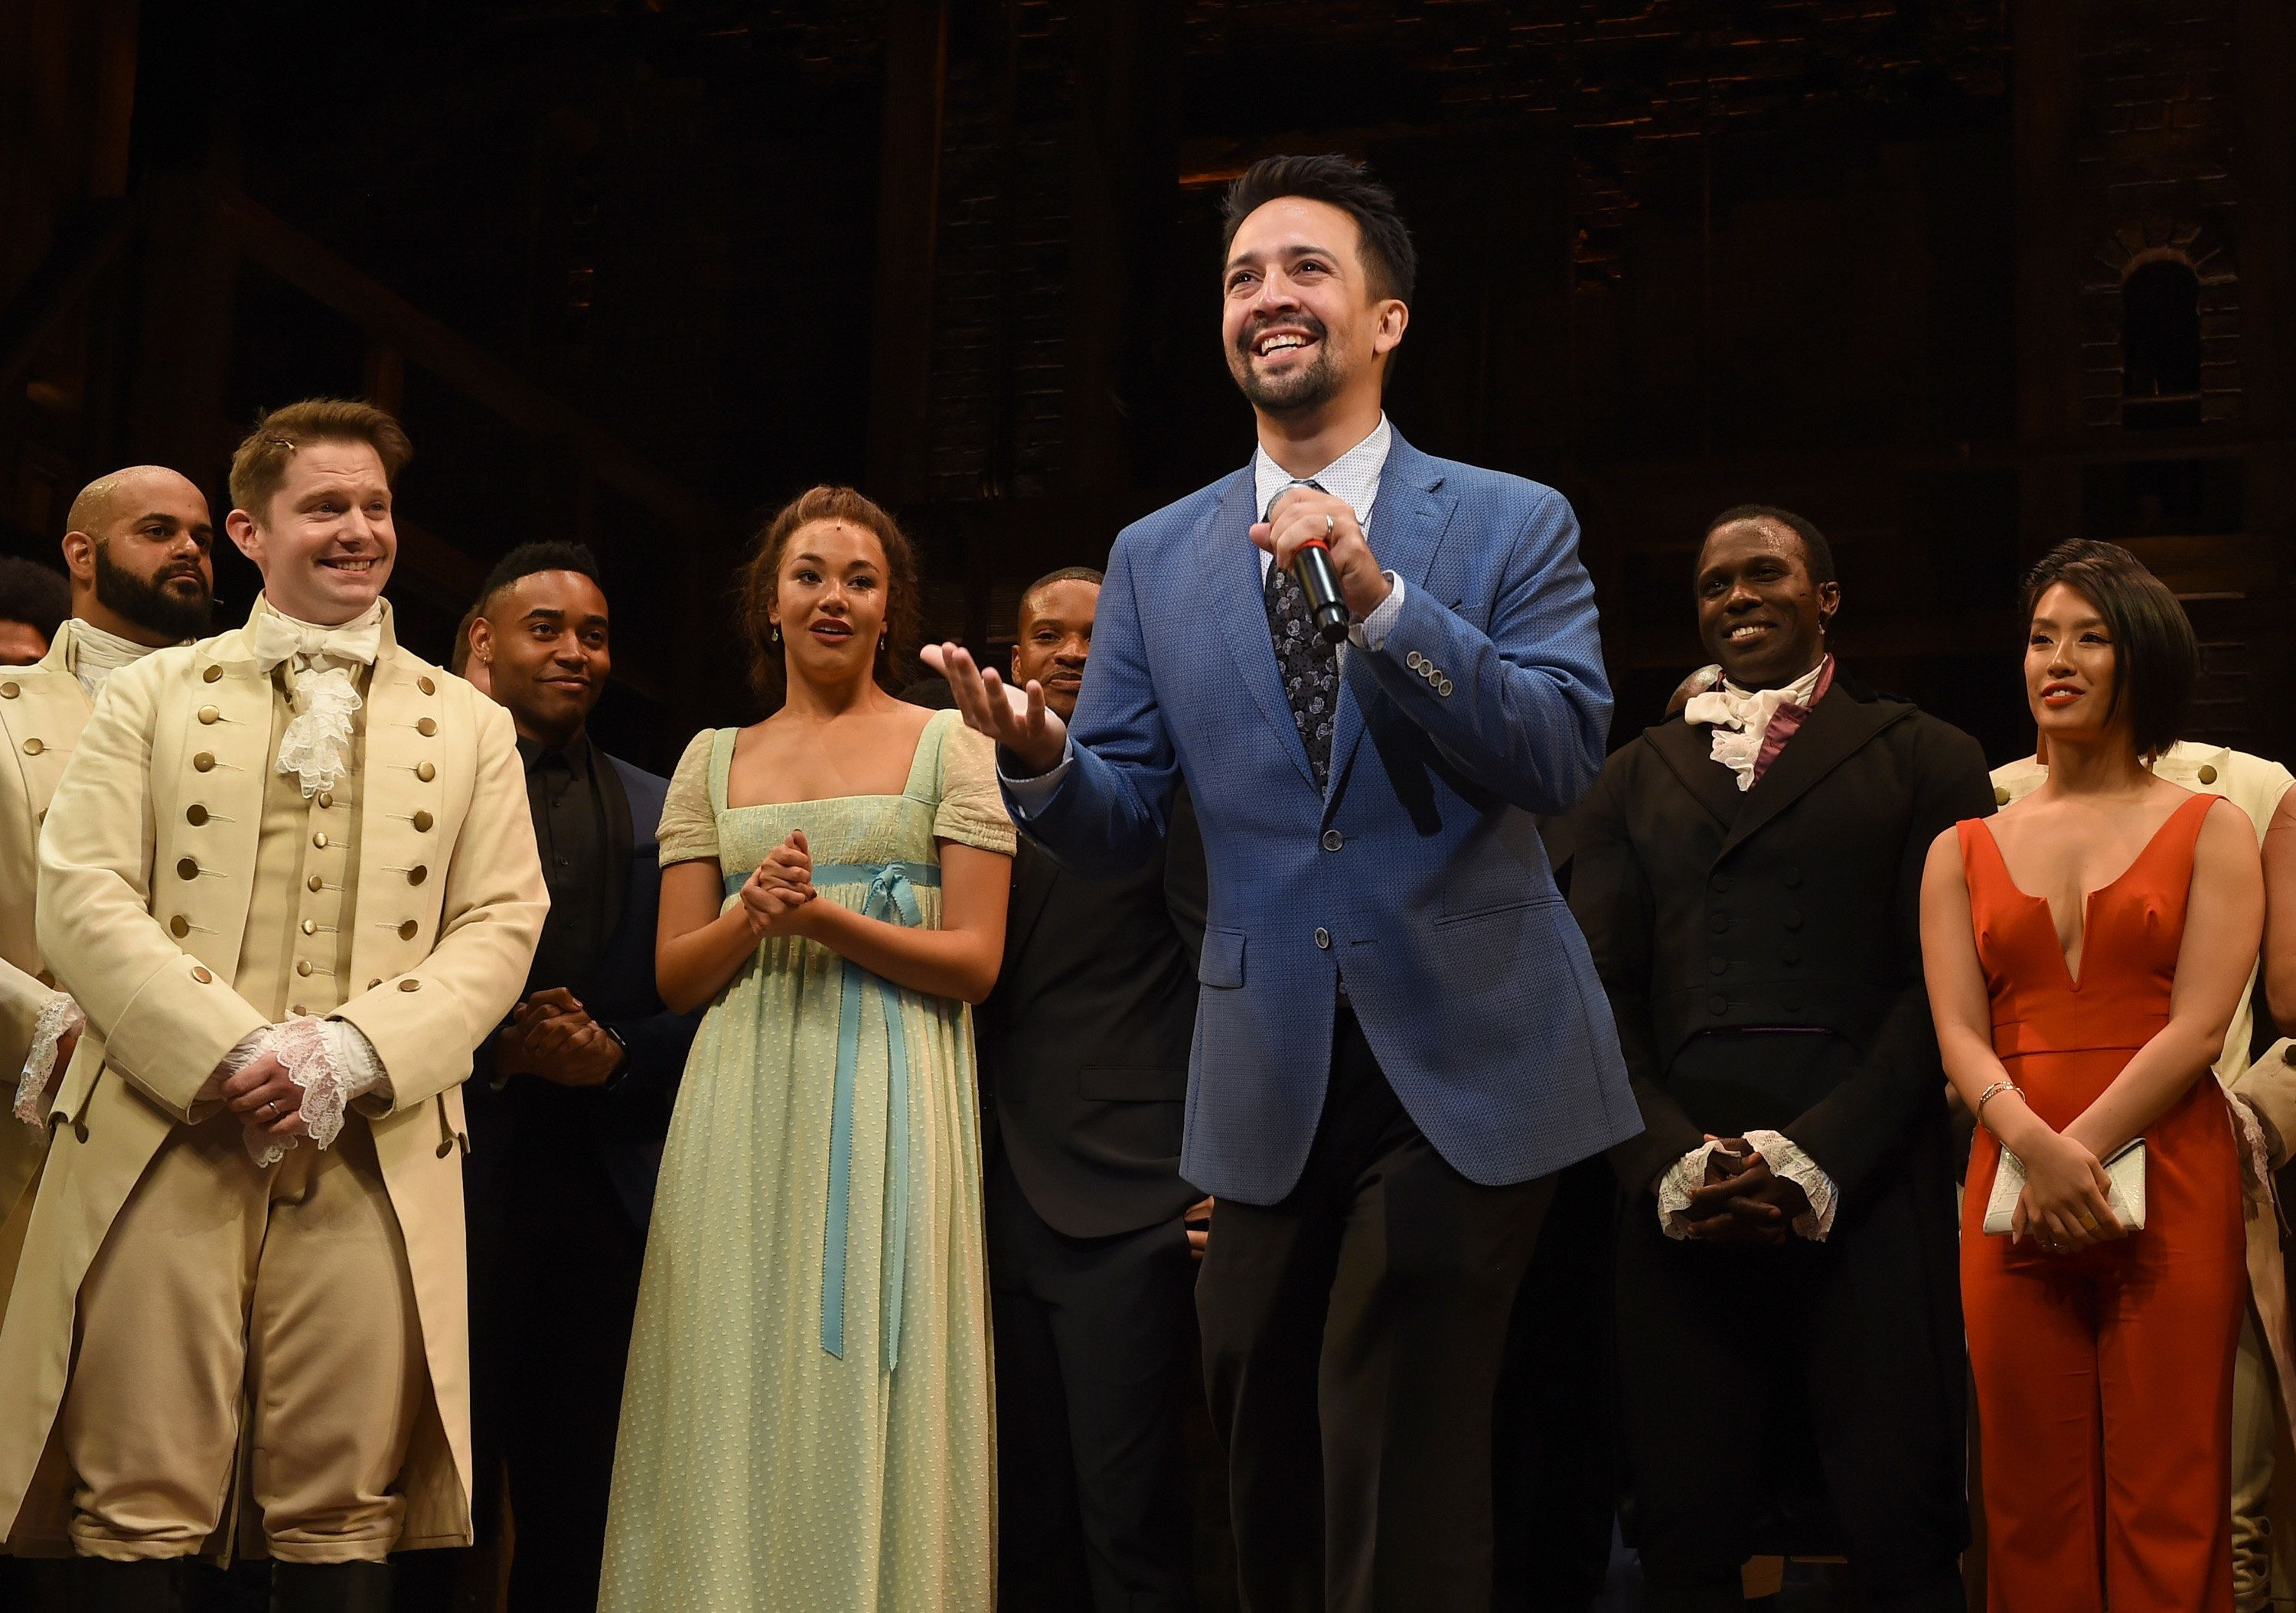 LOS ANGELES, CA - AUGUST 16:  Actor/writer/songwriter Lin-Manuel Miranda and the cast appear onstage at the opening night curtain call for 'Hamilton' at the Pantages Theatre on August 16, 2017 in Los Angeles, California.  (Photo by Kevin Winter/Getty Images)